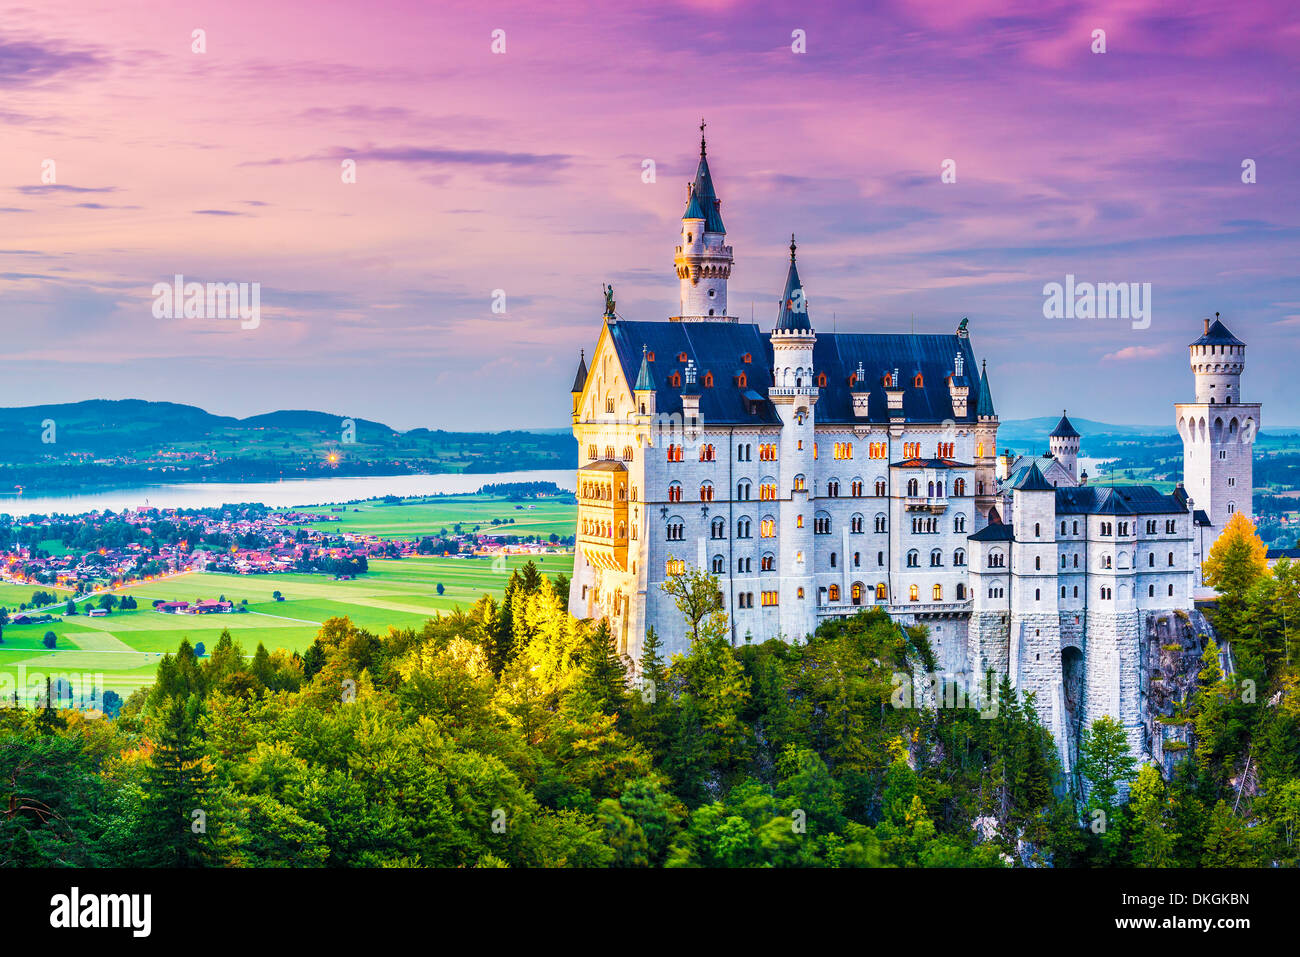 Il Castello di Neuschwanstein in Germania. Immagini Stock